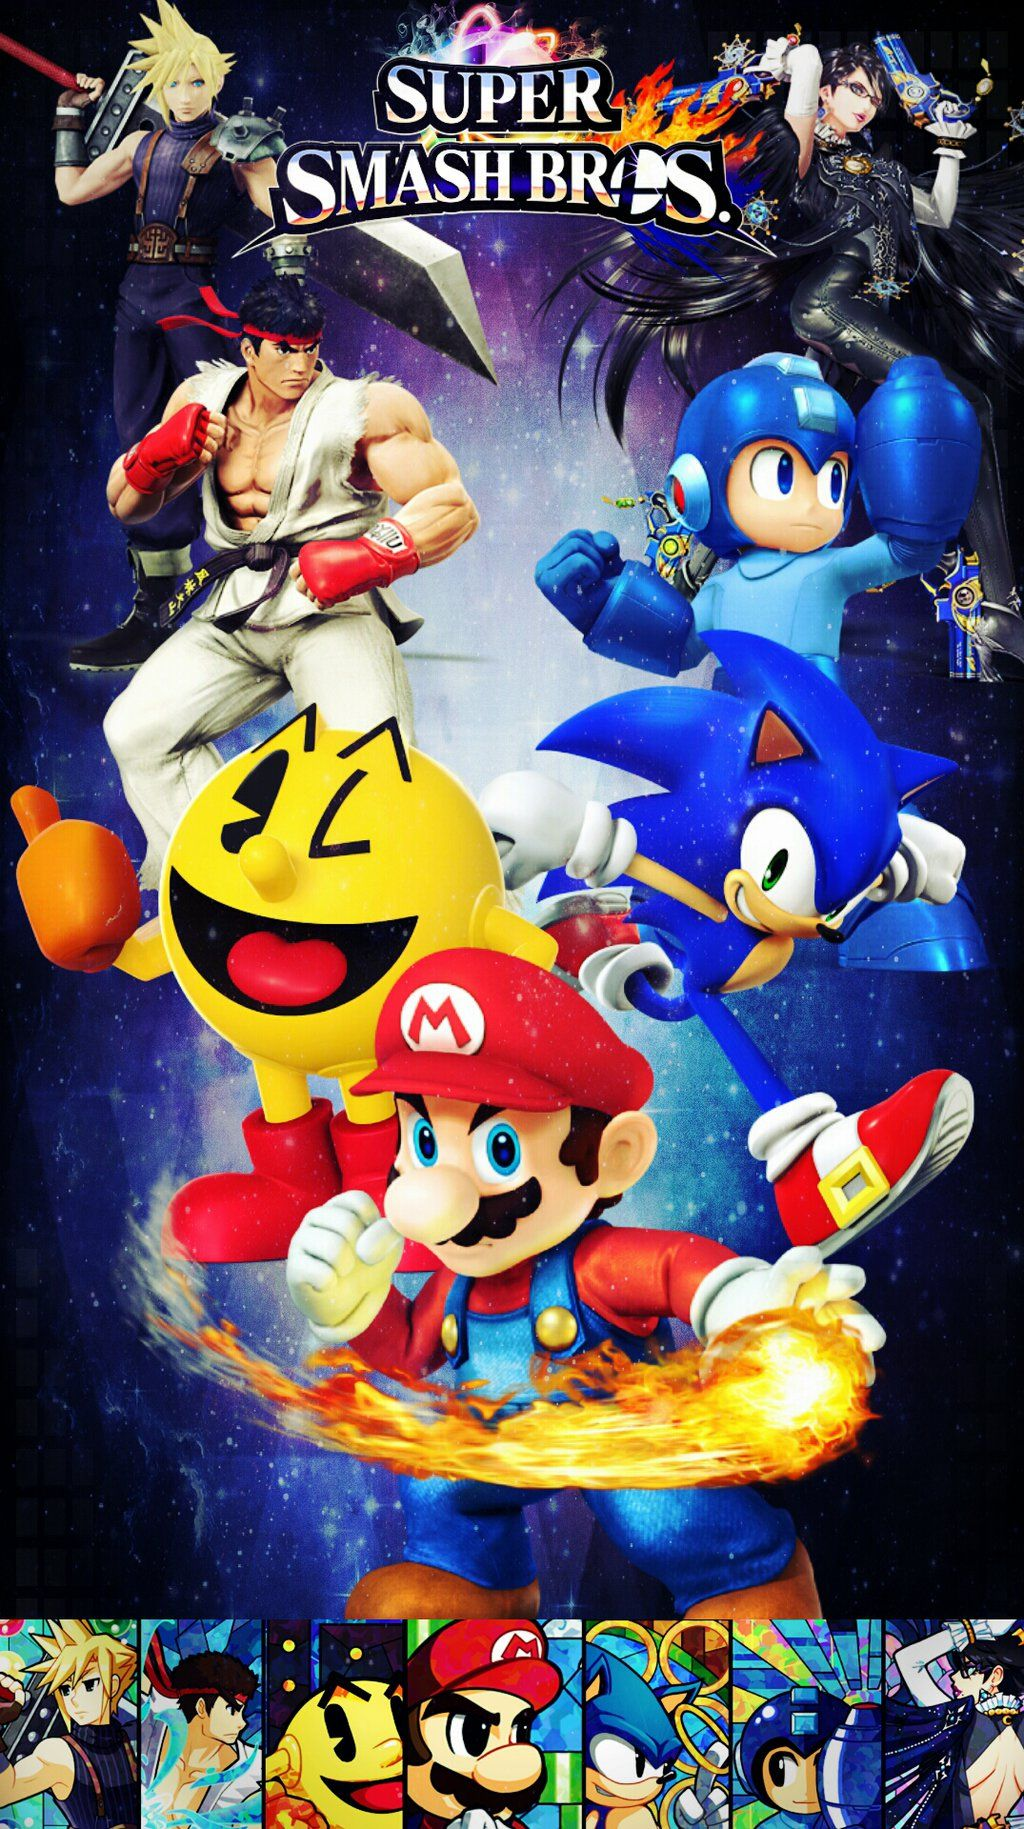 Super Smash Bros Wallpaper Phone Posted By John Cunningham